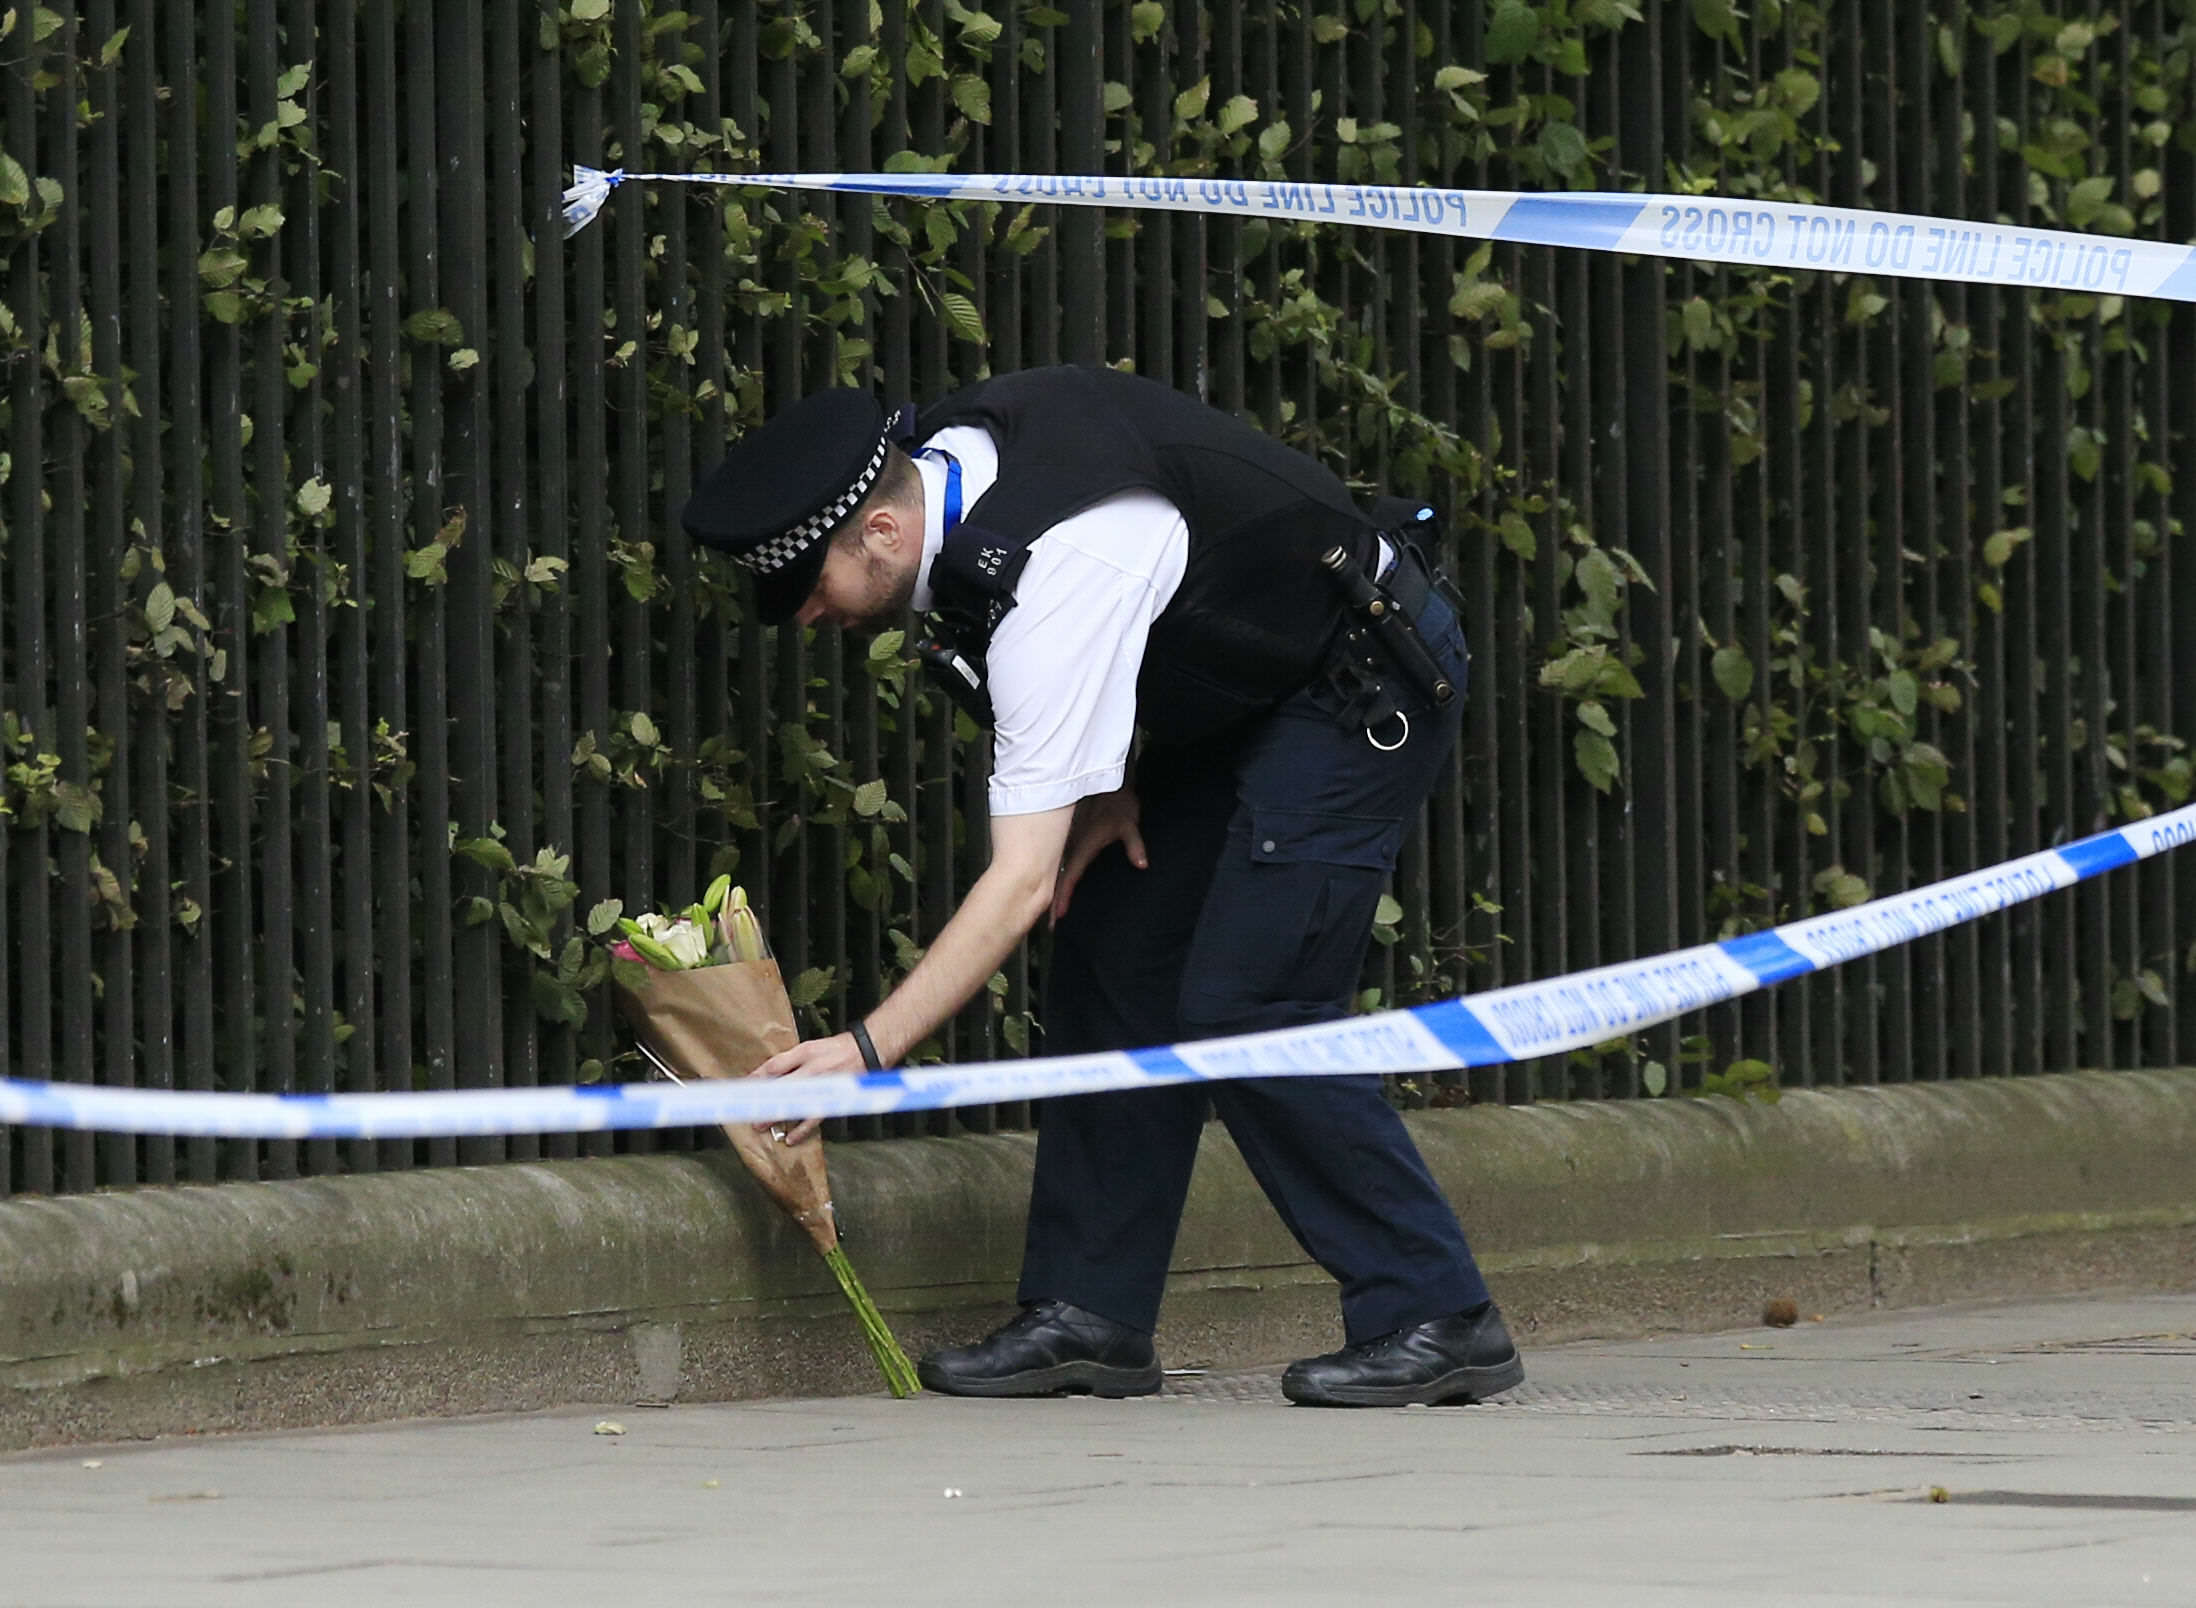 Knife attack in central London